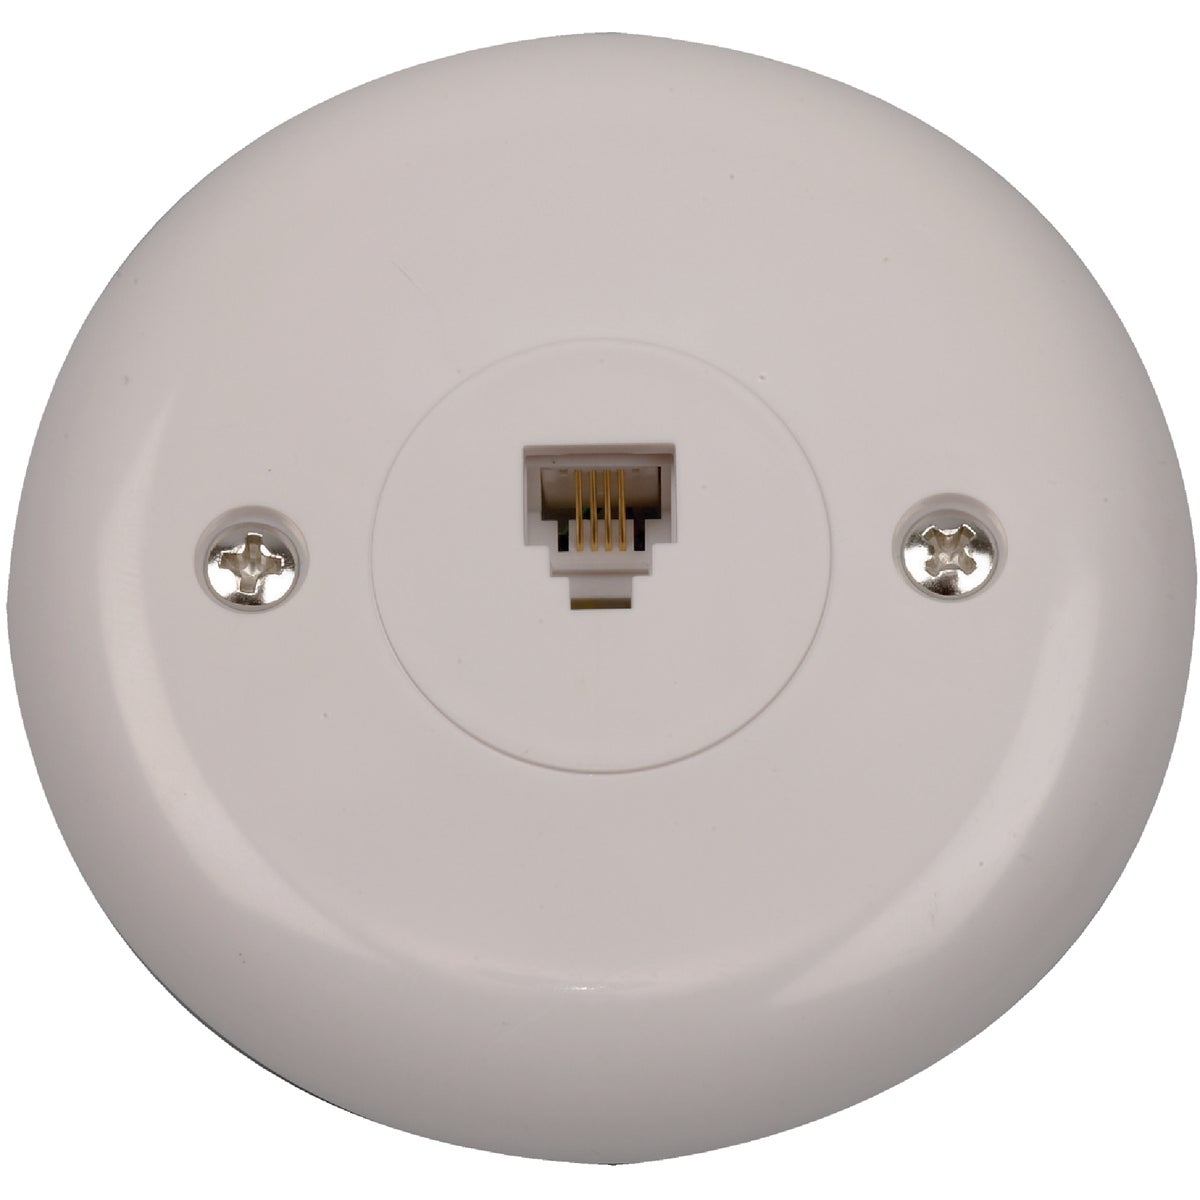 WHT ROUND PHONE JACK - TP248WHRV by Audiovox Accessories